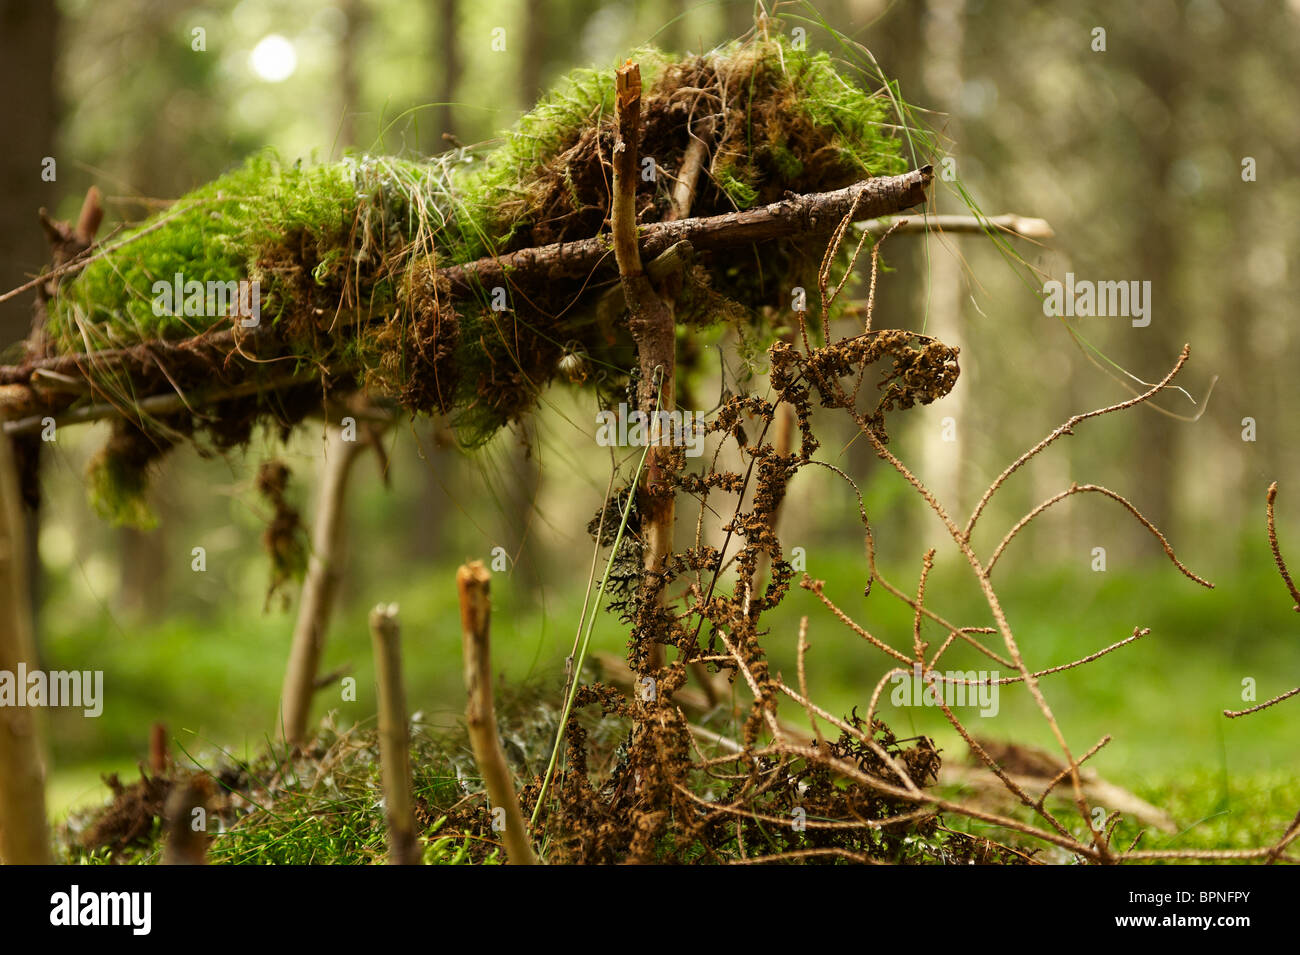 wooden house dwarf in forest stockfotos wooden house dwarf in forest bilder alamy. Black Bedroom Furniture Sets. Home Design Ideas